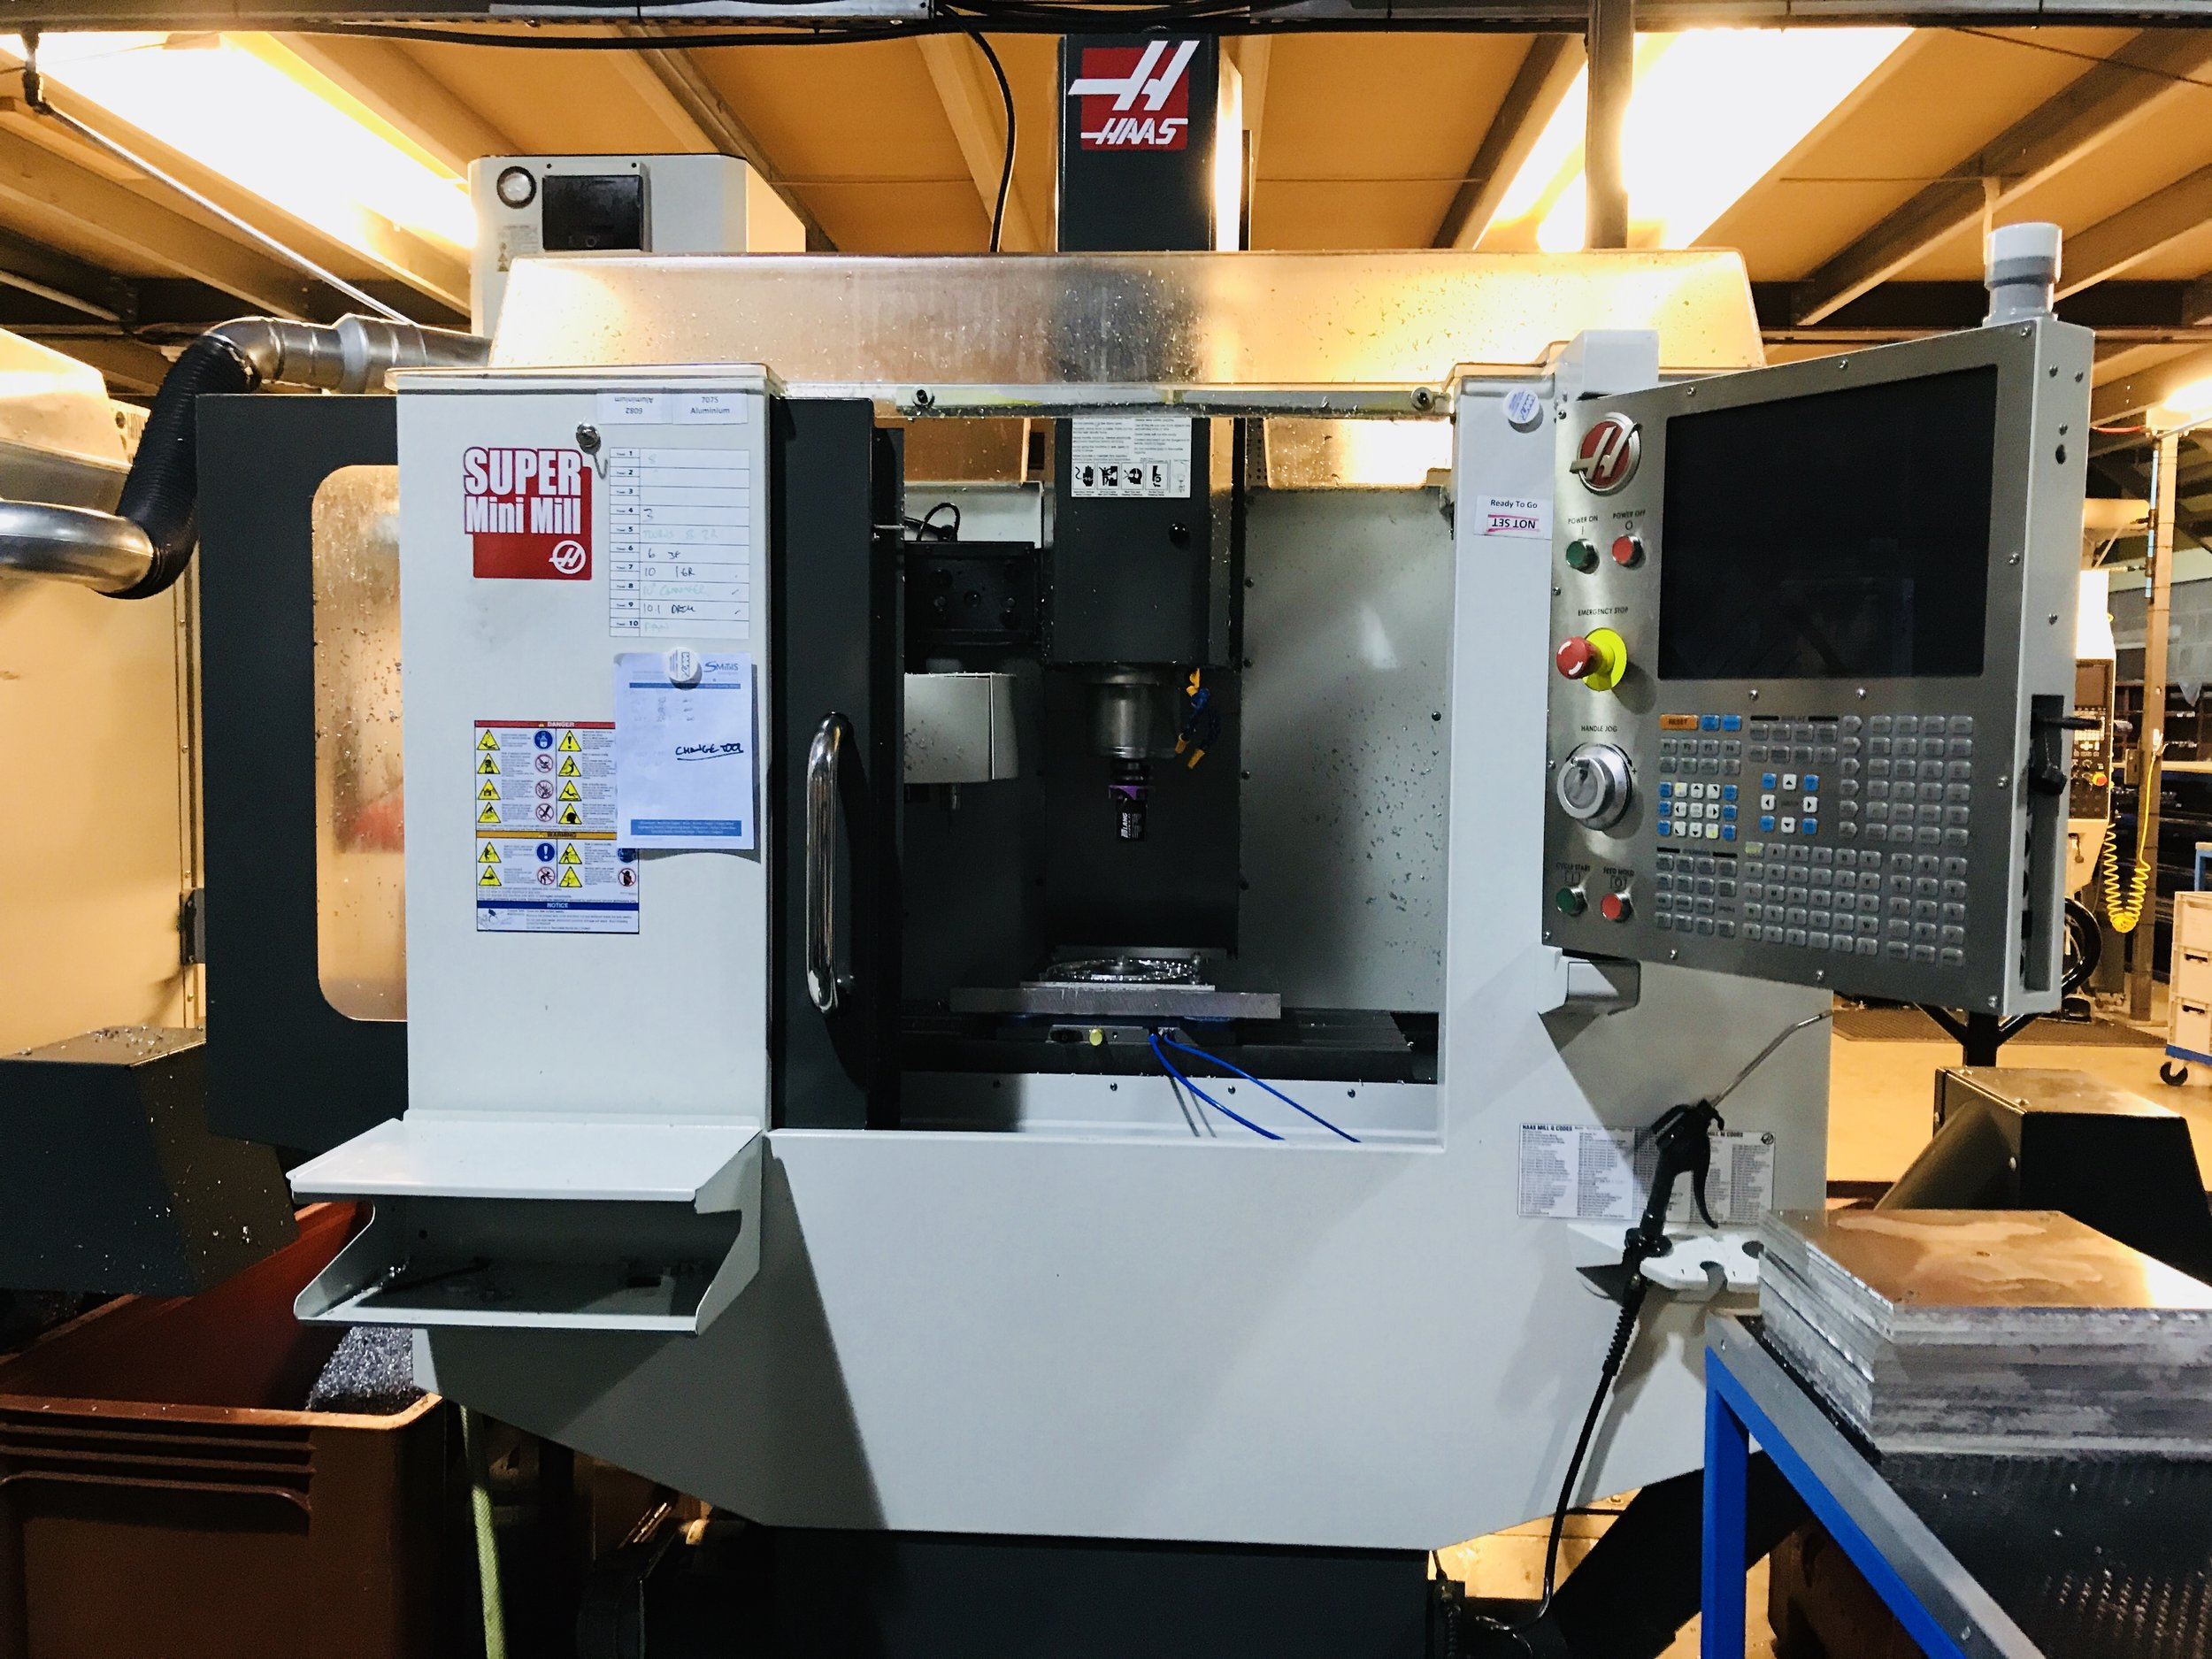 Haas Super Mini Mills - Two high speed 10,000RPM milling machine with vacuum loaded pallet system or zero point vices, for fast deployment of small run jobs. Most jobs do not justify investment in volume manufacturing tooling, so the small machining envelope suits this type of work.For smaller runs and flexibility to work around the schedule of the bigger machines. The Haas Super Minimills are as accurate as the larger machines and allow us to flex production to customers demands.